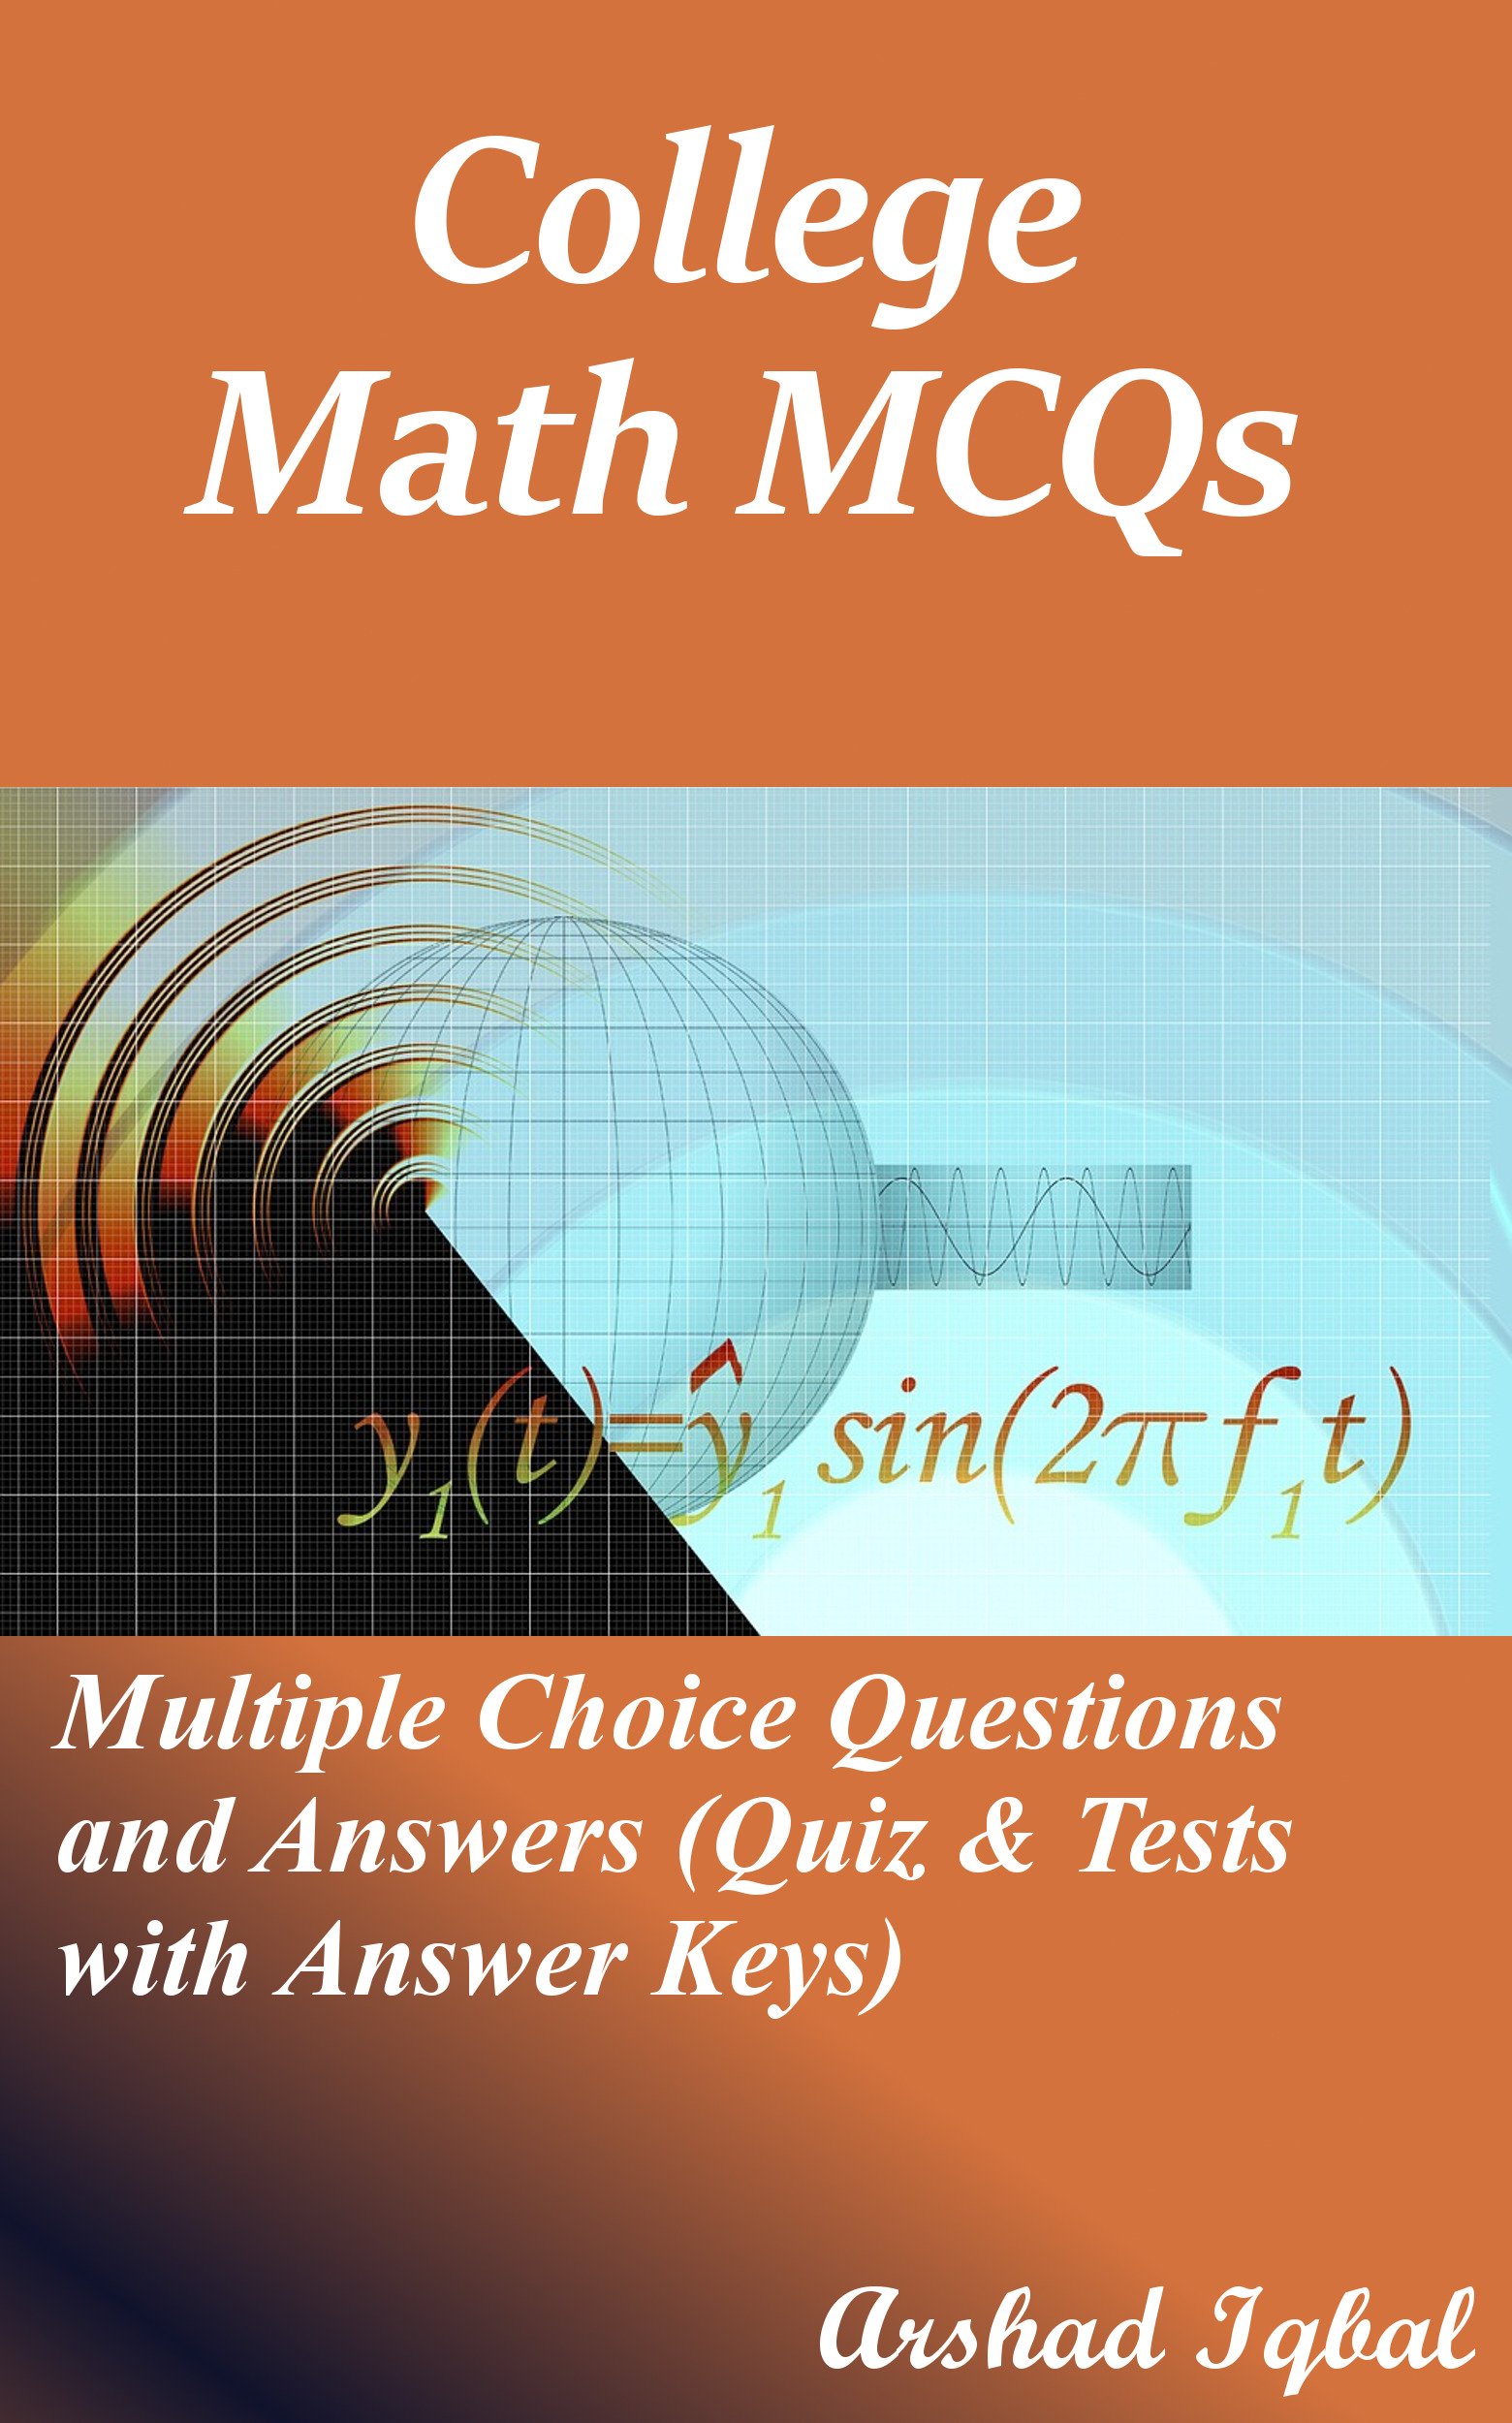 Smashwords – College Math MCQs: Multiple Choice Questions and ...